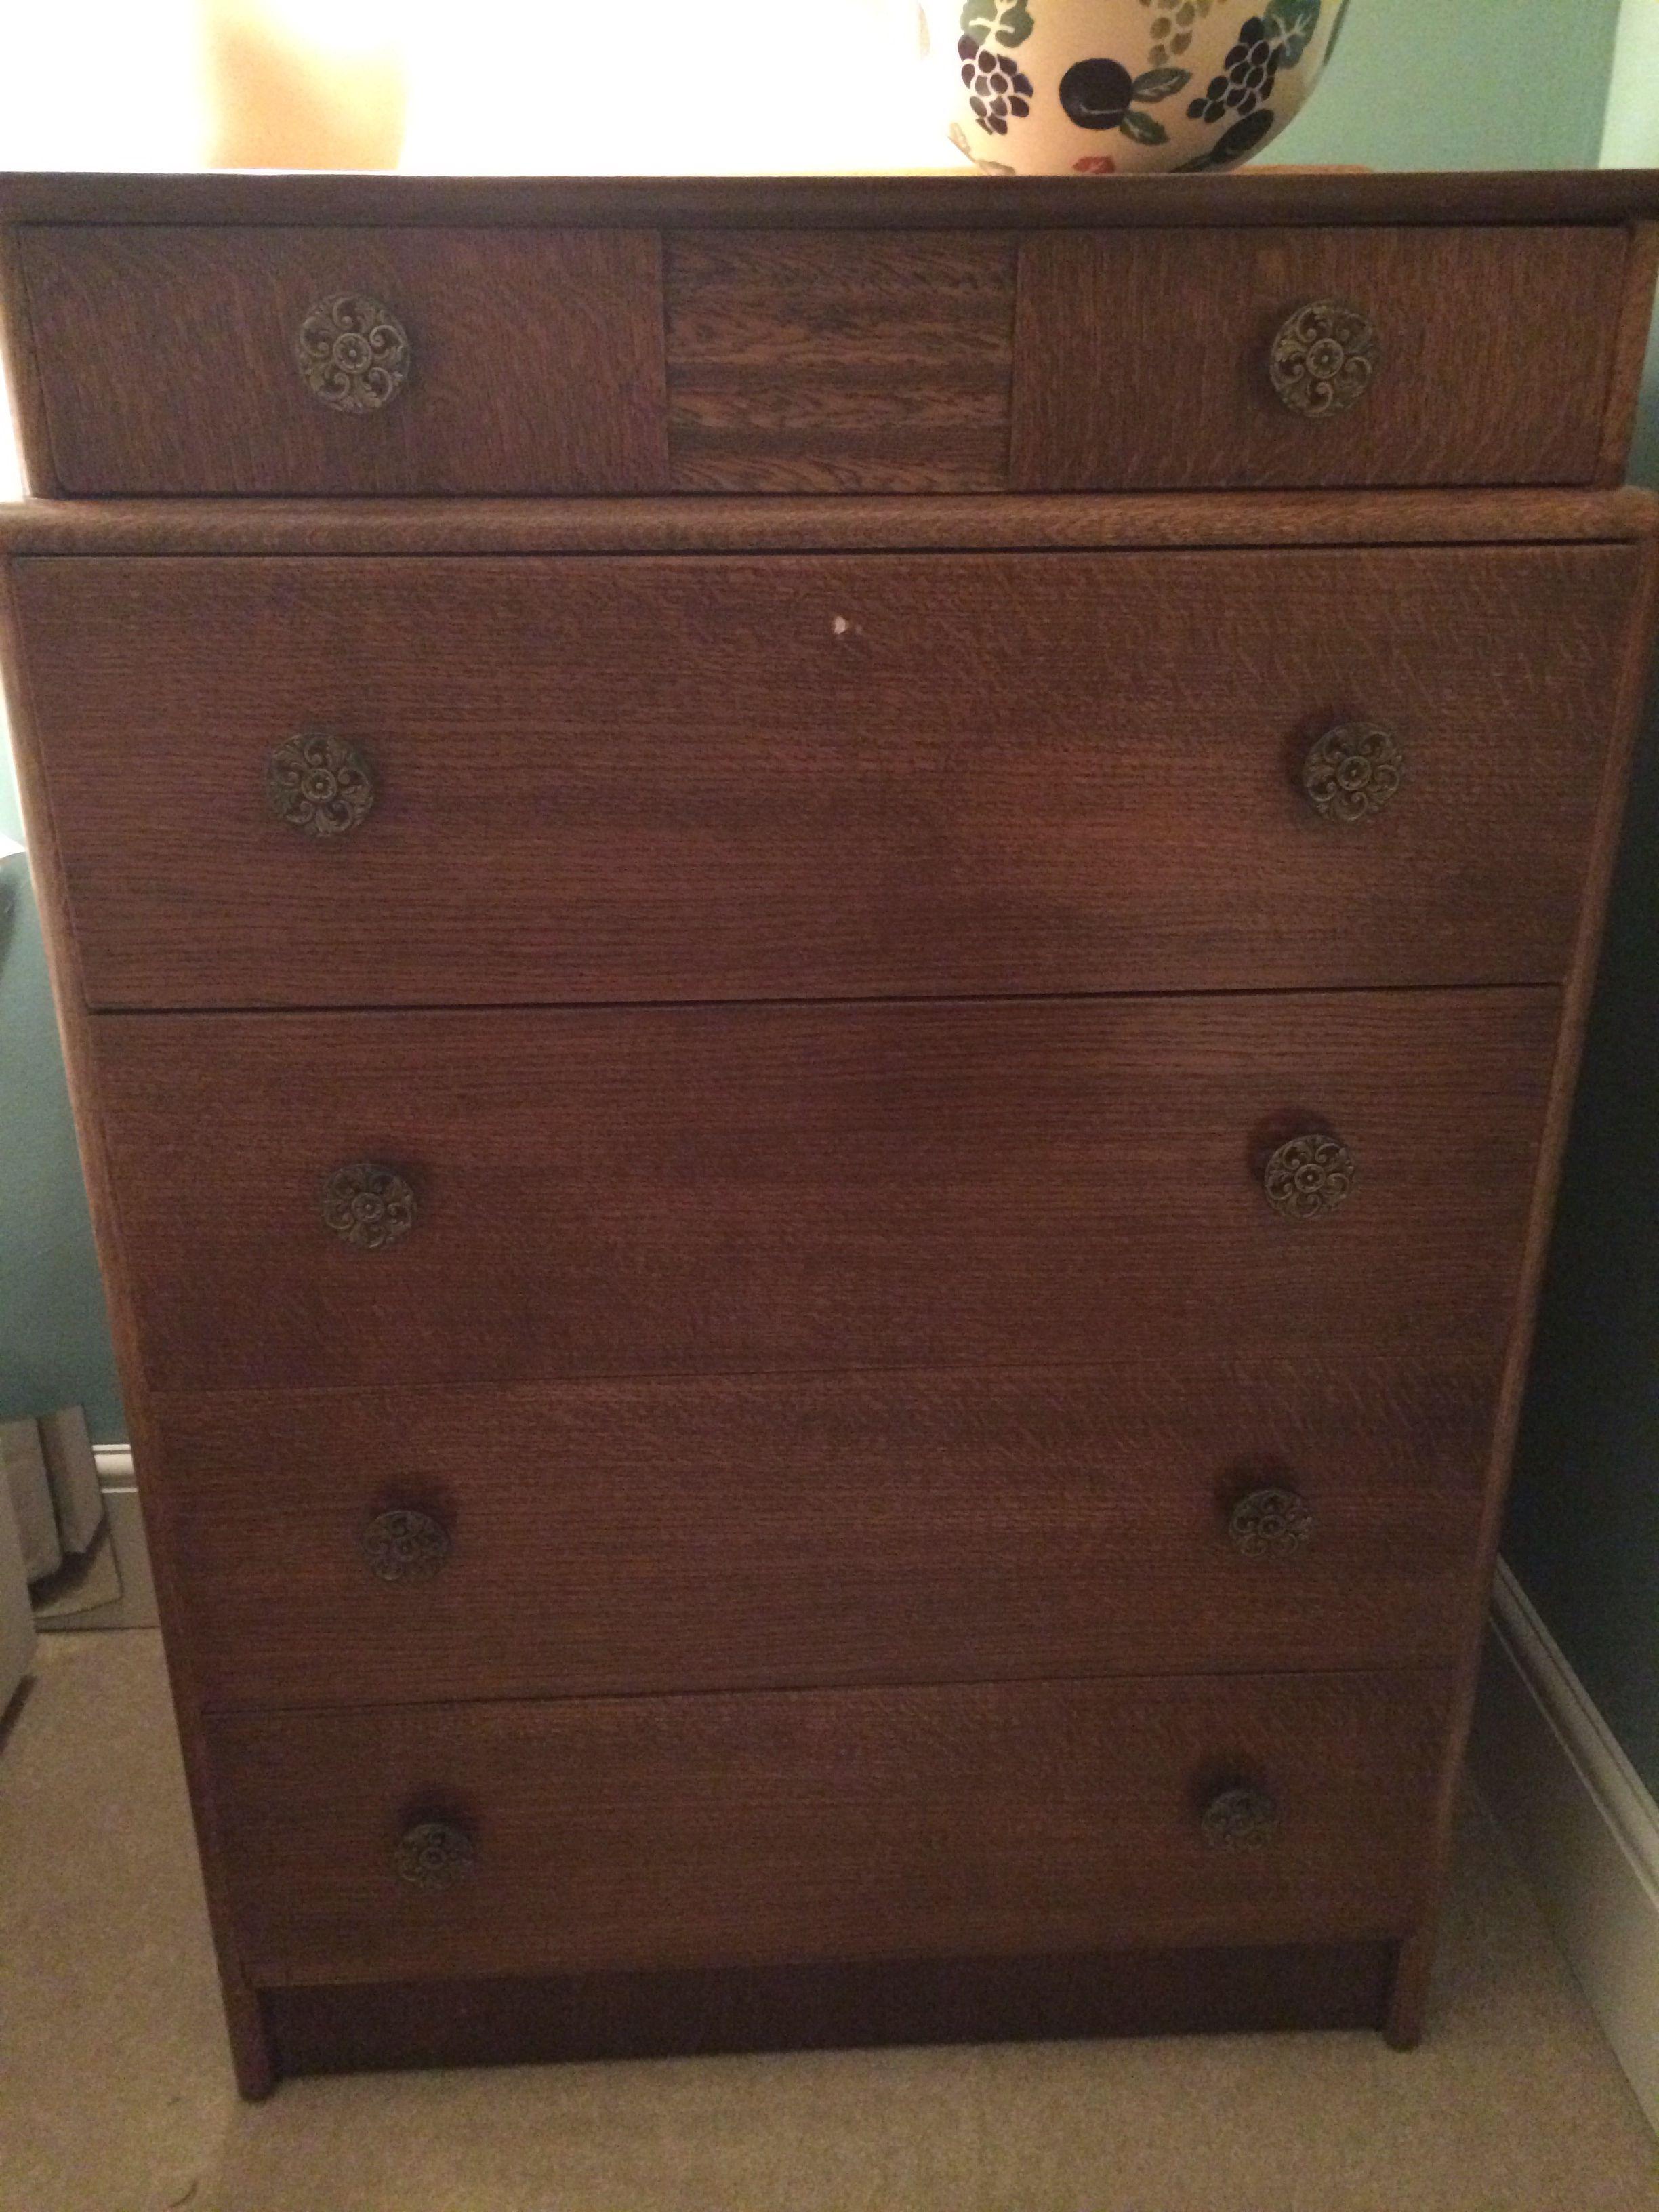 What to do where to but it inherited chest